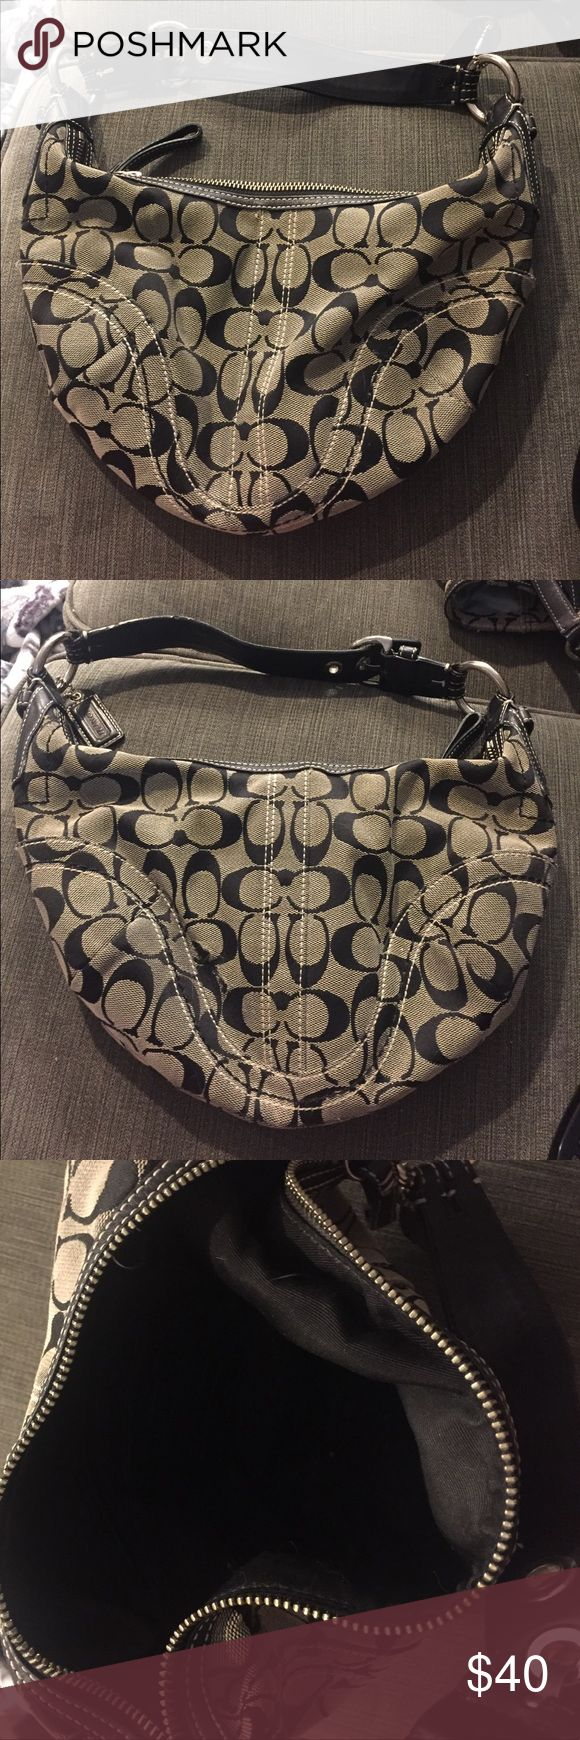 Black coach hobo bag Black and grey small coach hobo bag slightly used good condition Coach Bags Hobos